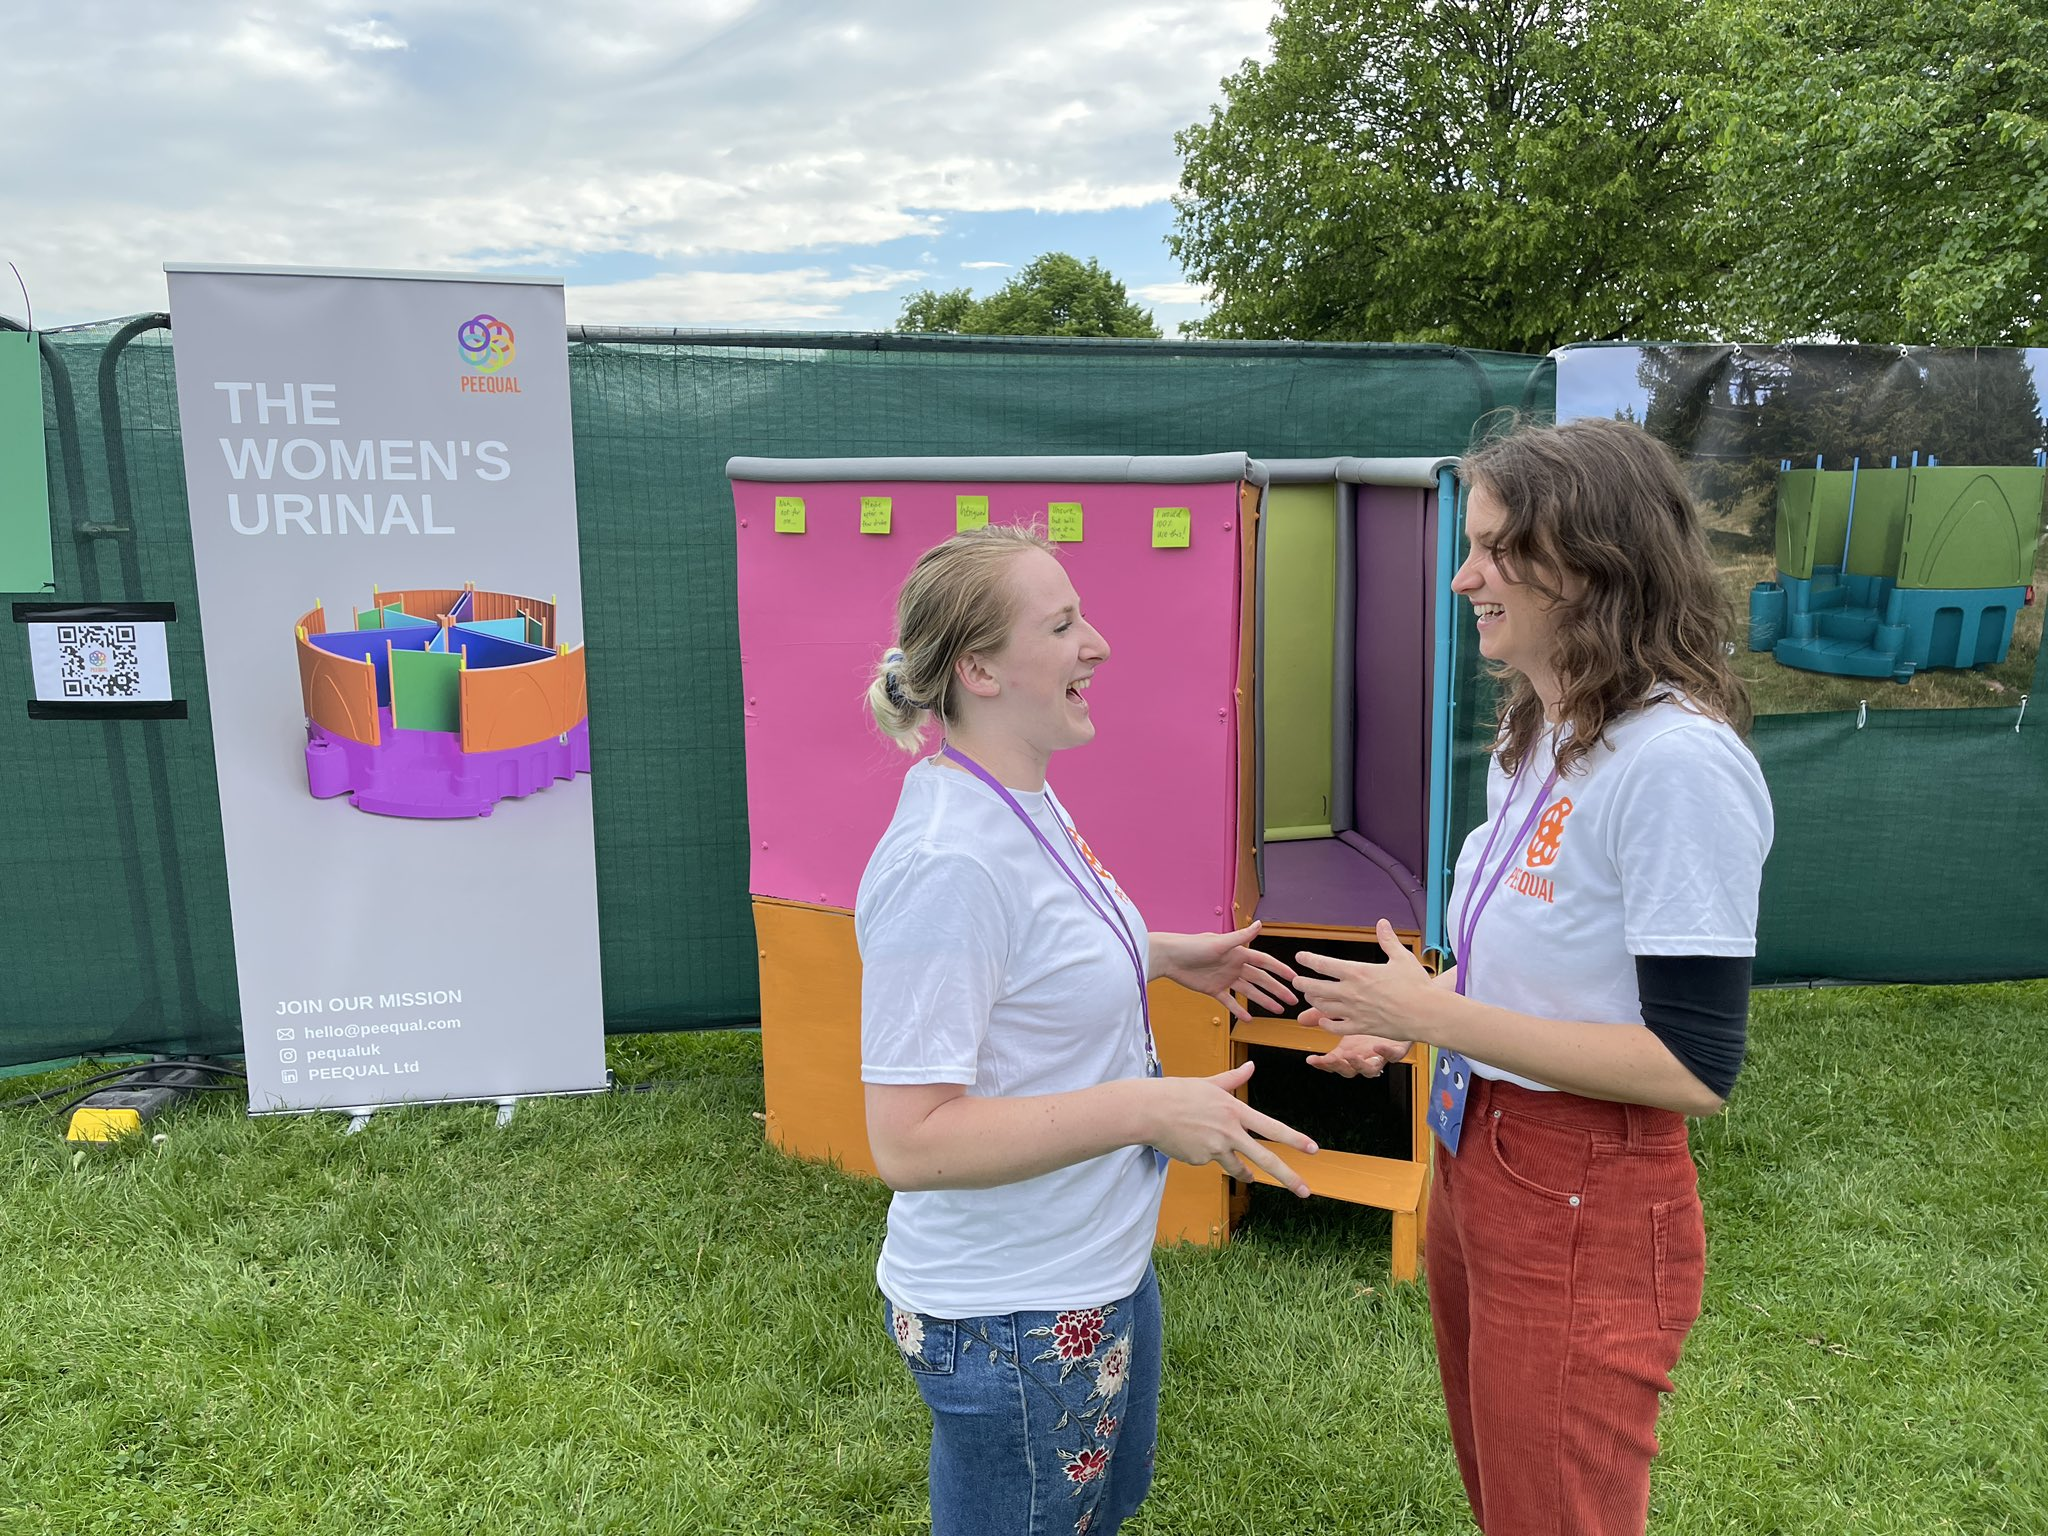 """Anthony Ward on Twitter: """"Amber Probyn & Hazel McShane are showing their  Peequal - a urinal for women - at tonight's @comedygarden… """""""